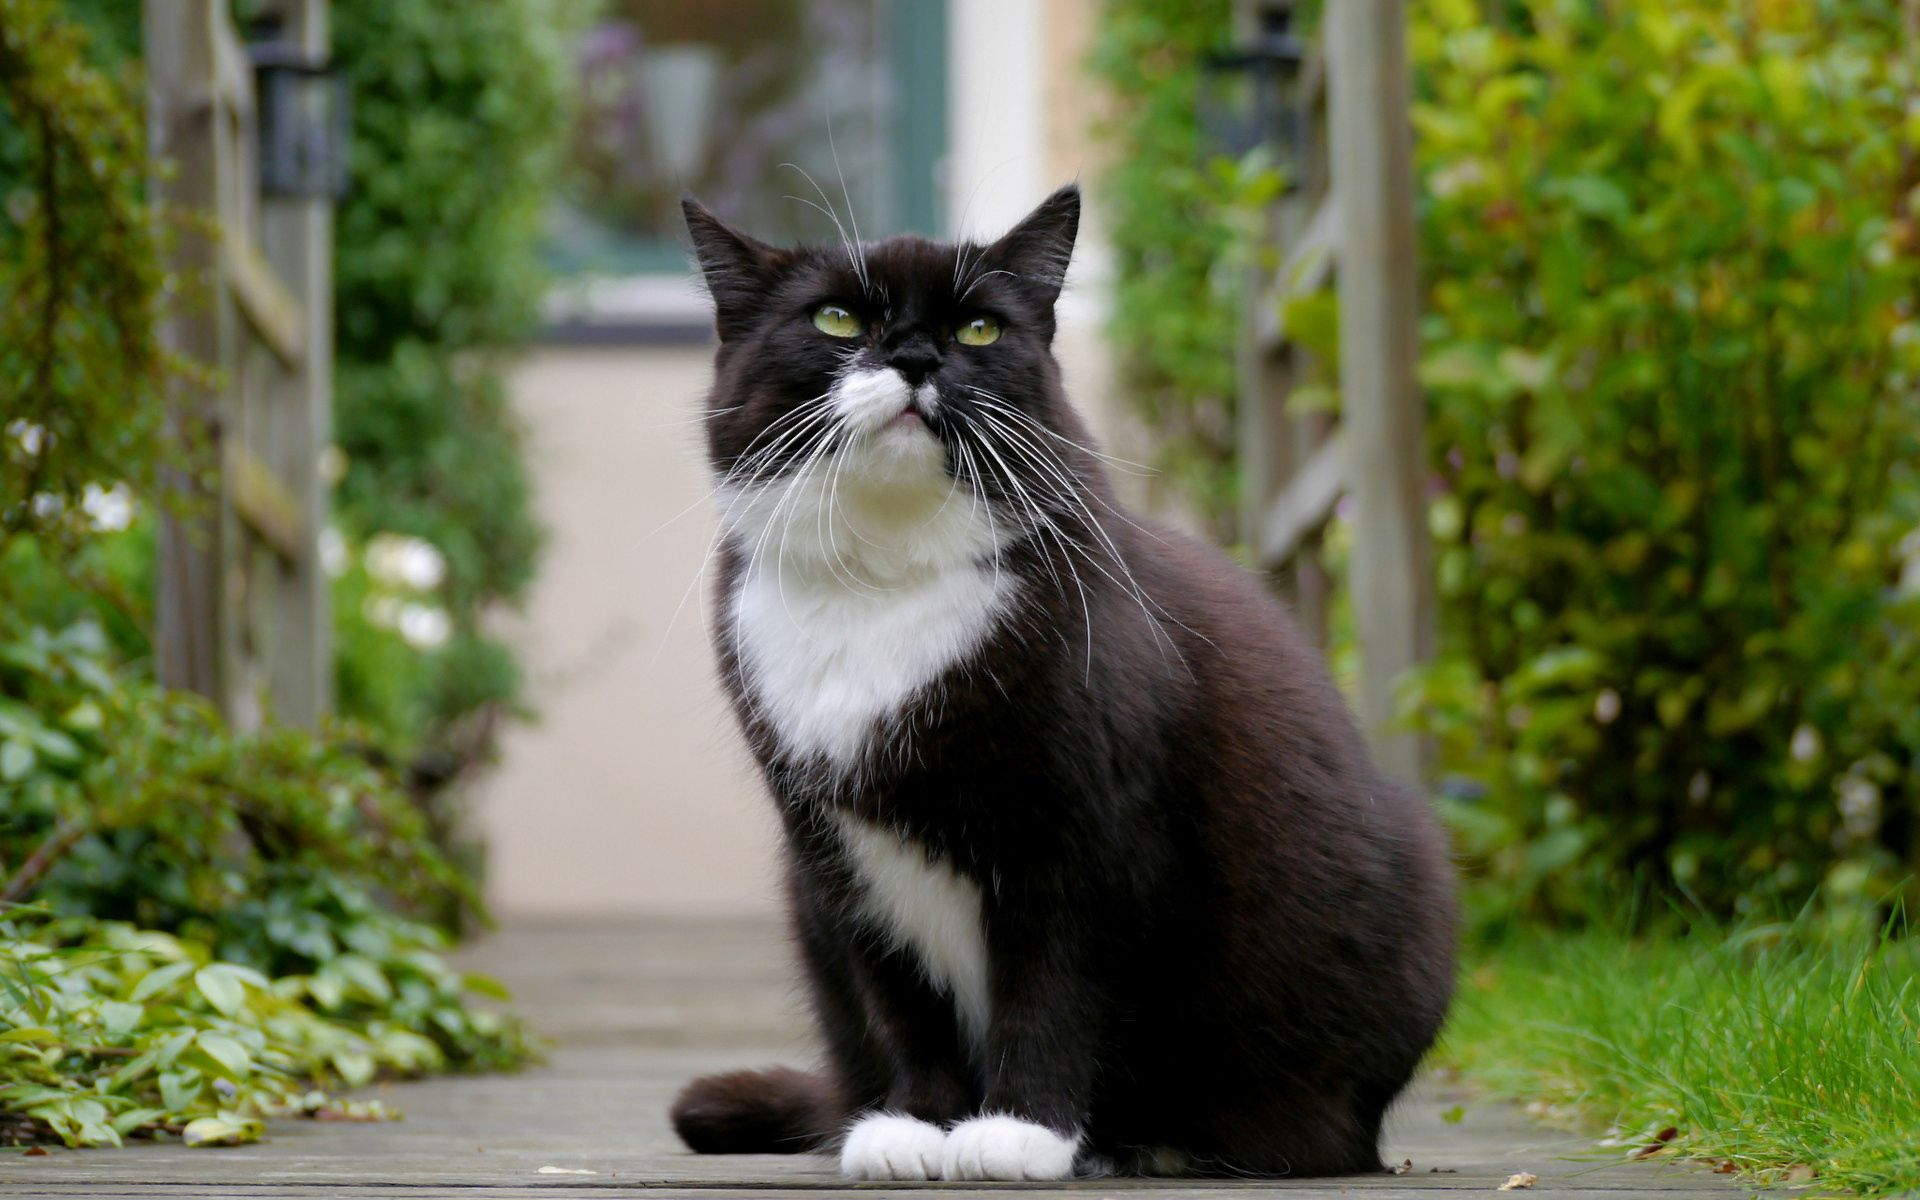 109433 download wallpaper Animals, Cat, Fat, Thick, Sight, Opinion, Spotted, Spotty, Sit screensavers and pictures for free